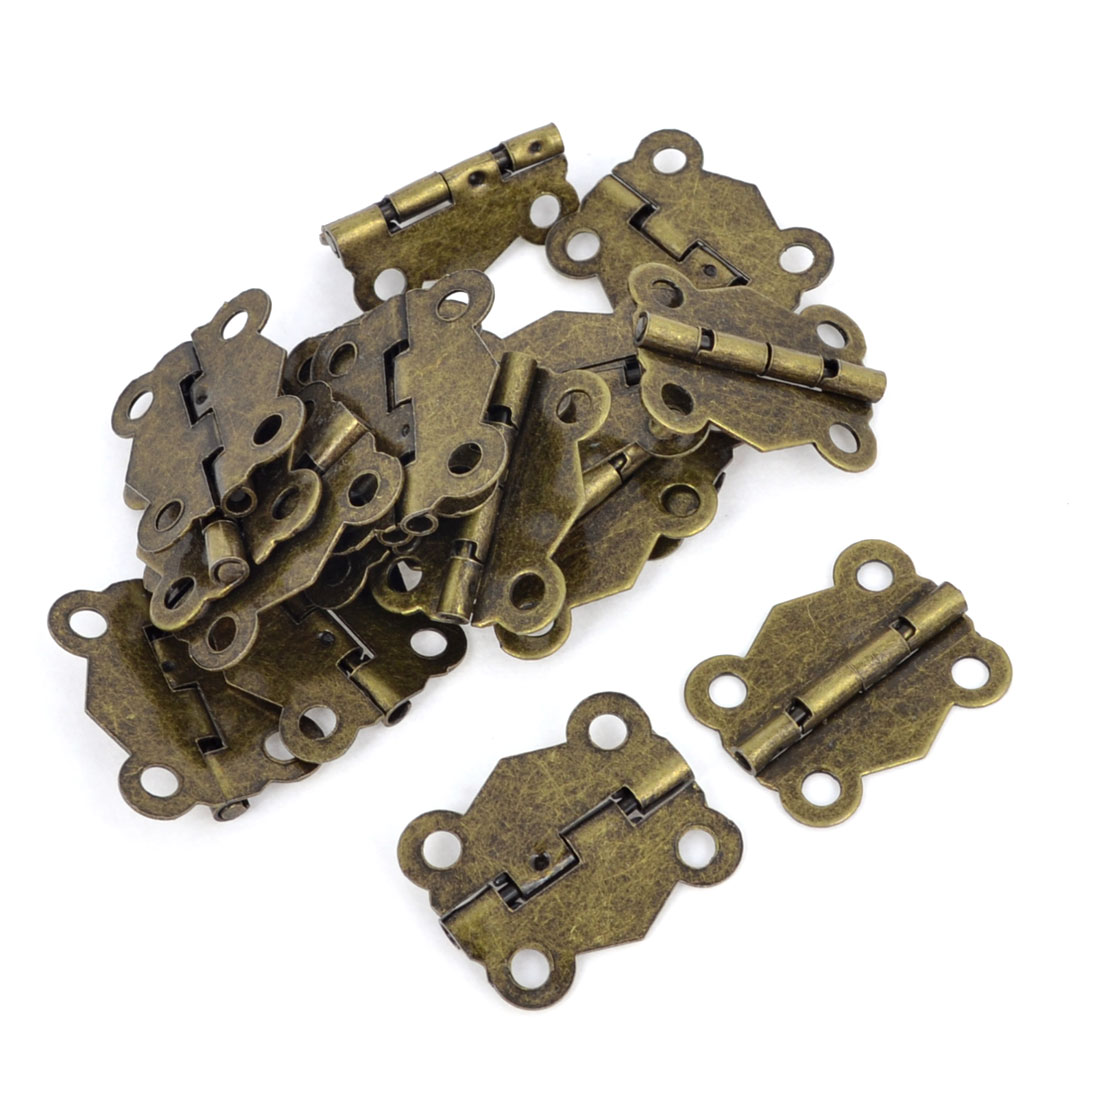 19 Pcs Bronze Tone Metal 2.4cm Long Door Brocade Box Butte Hinges